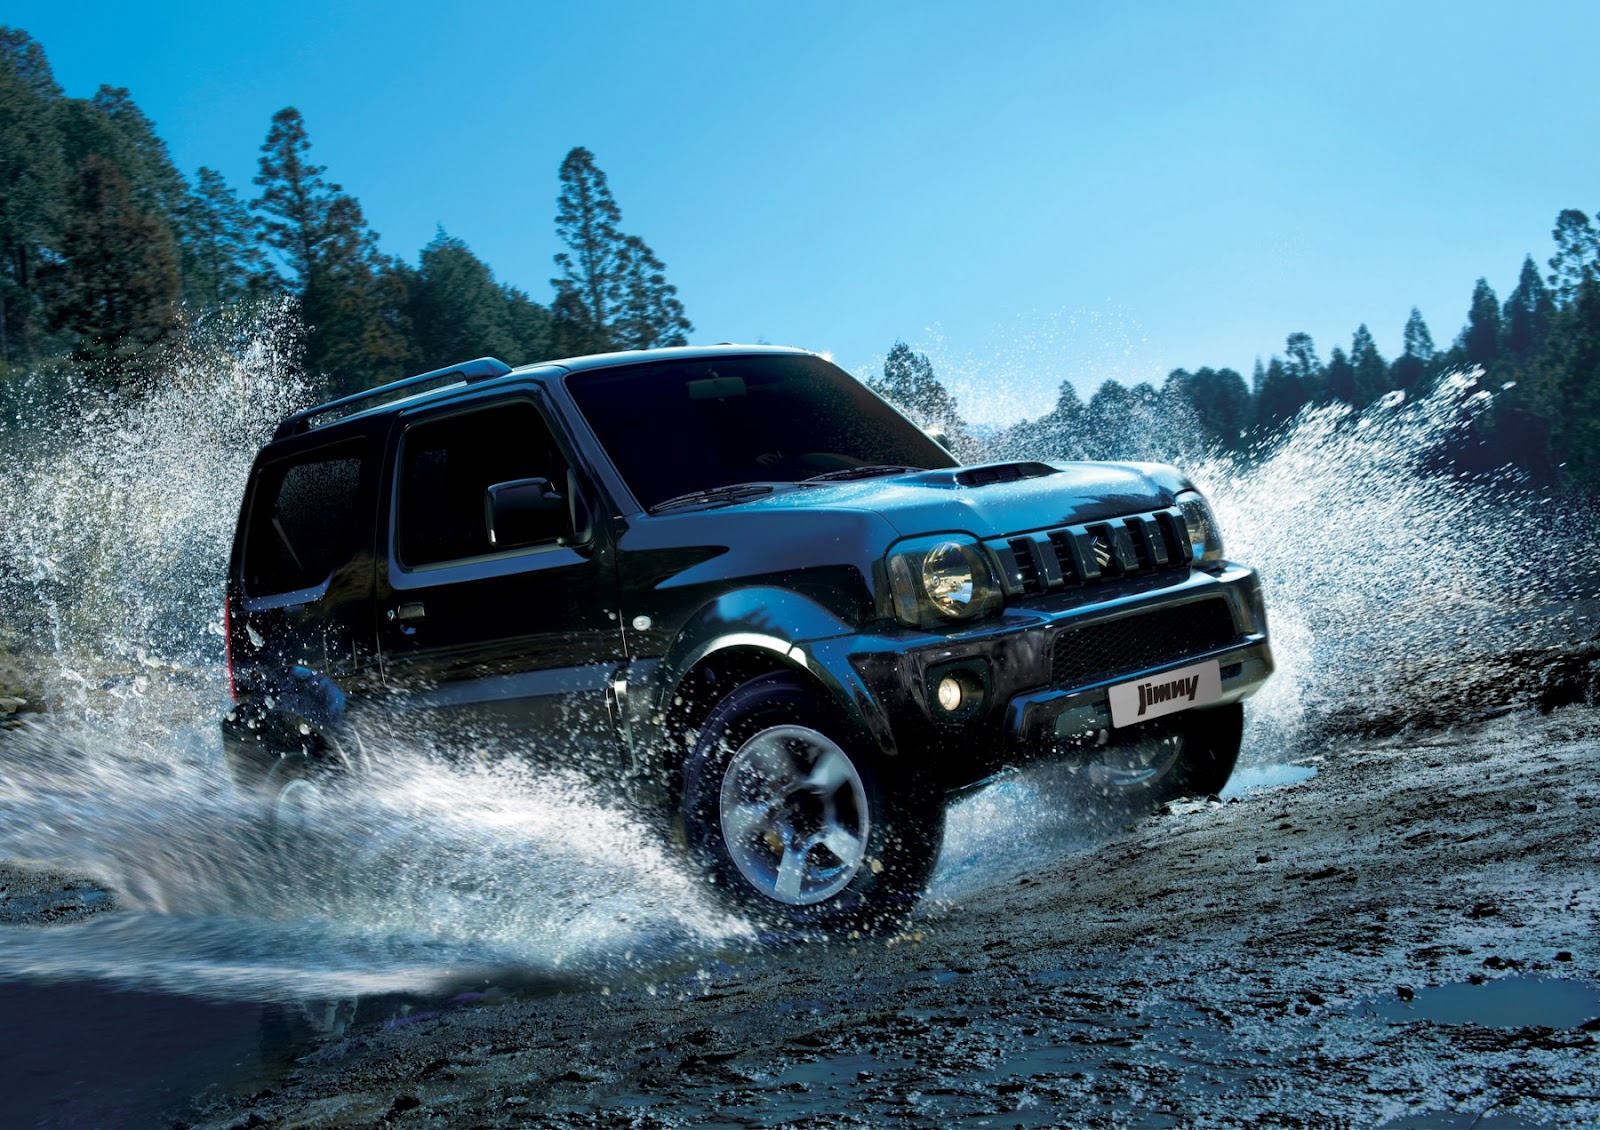 Suzuki Jimny - Feeling Offended On The Road #1